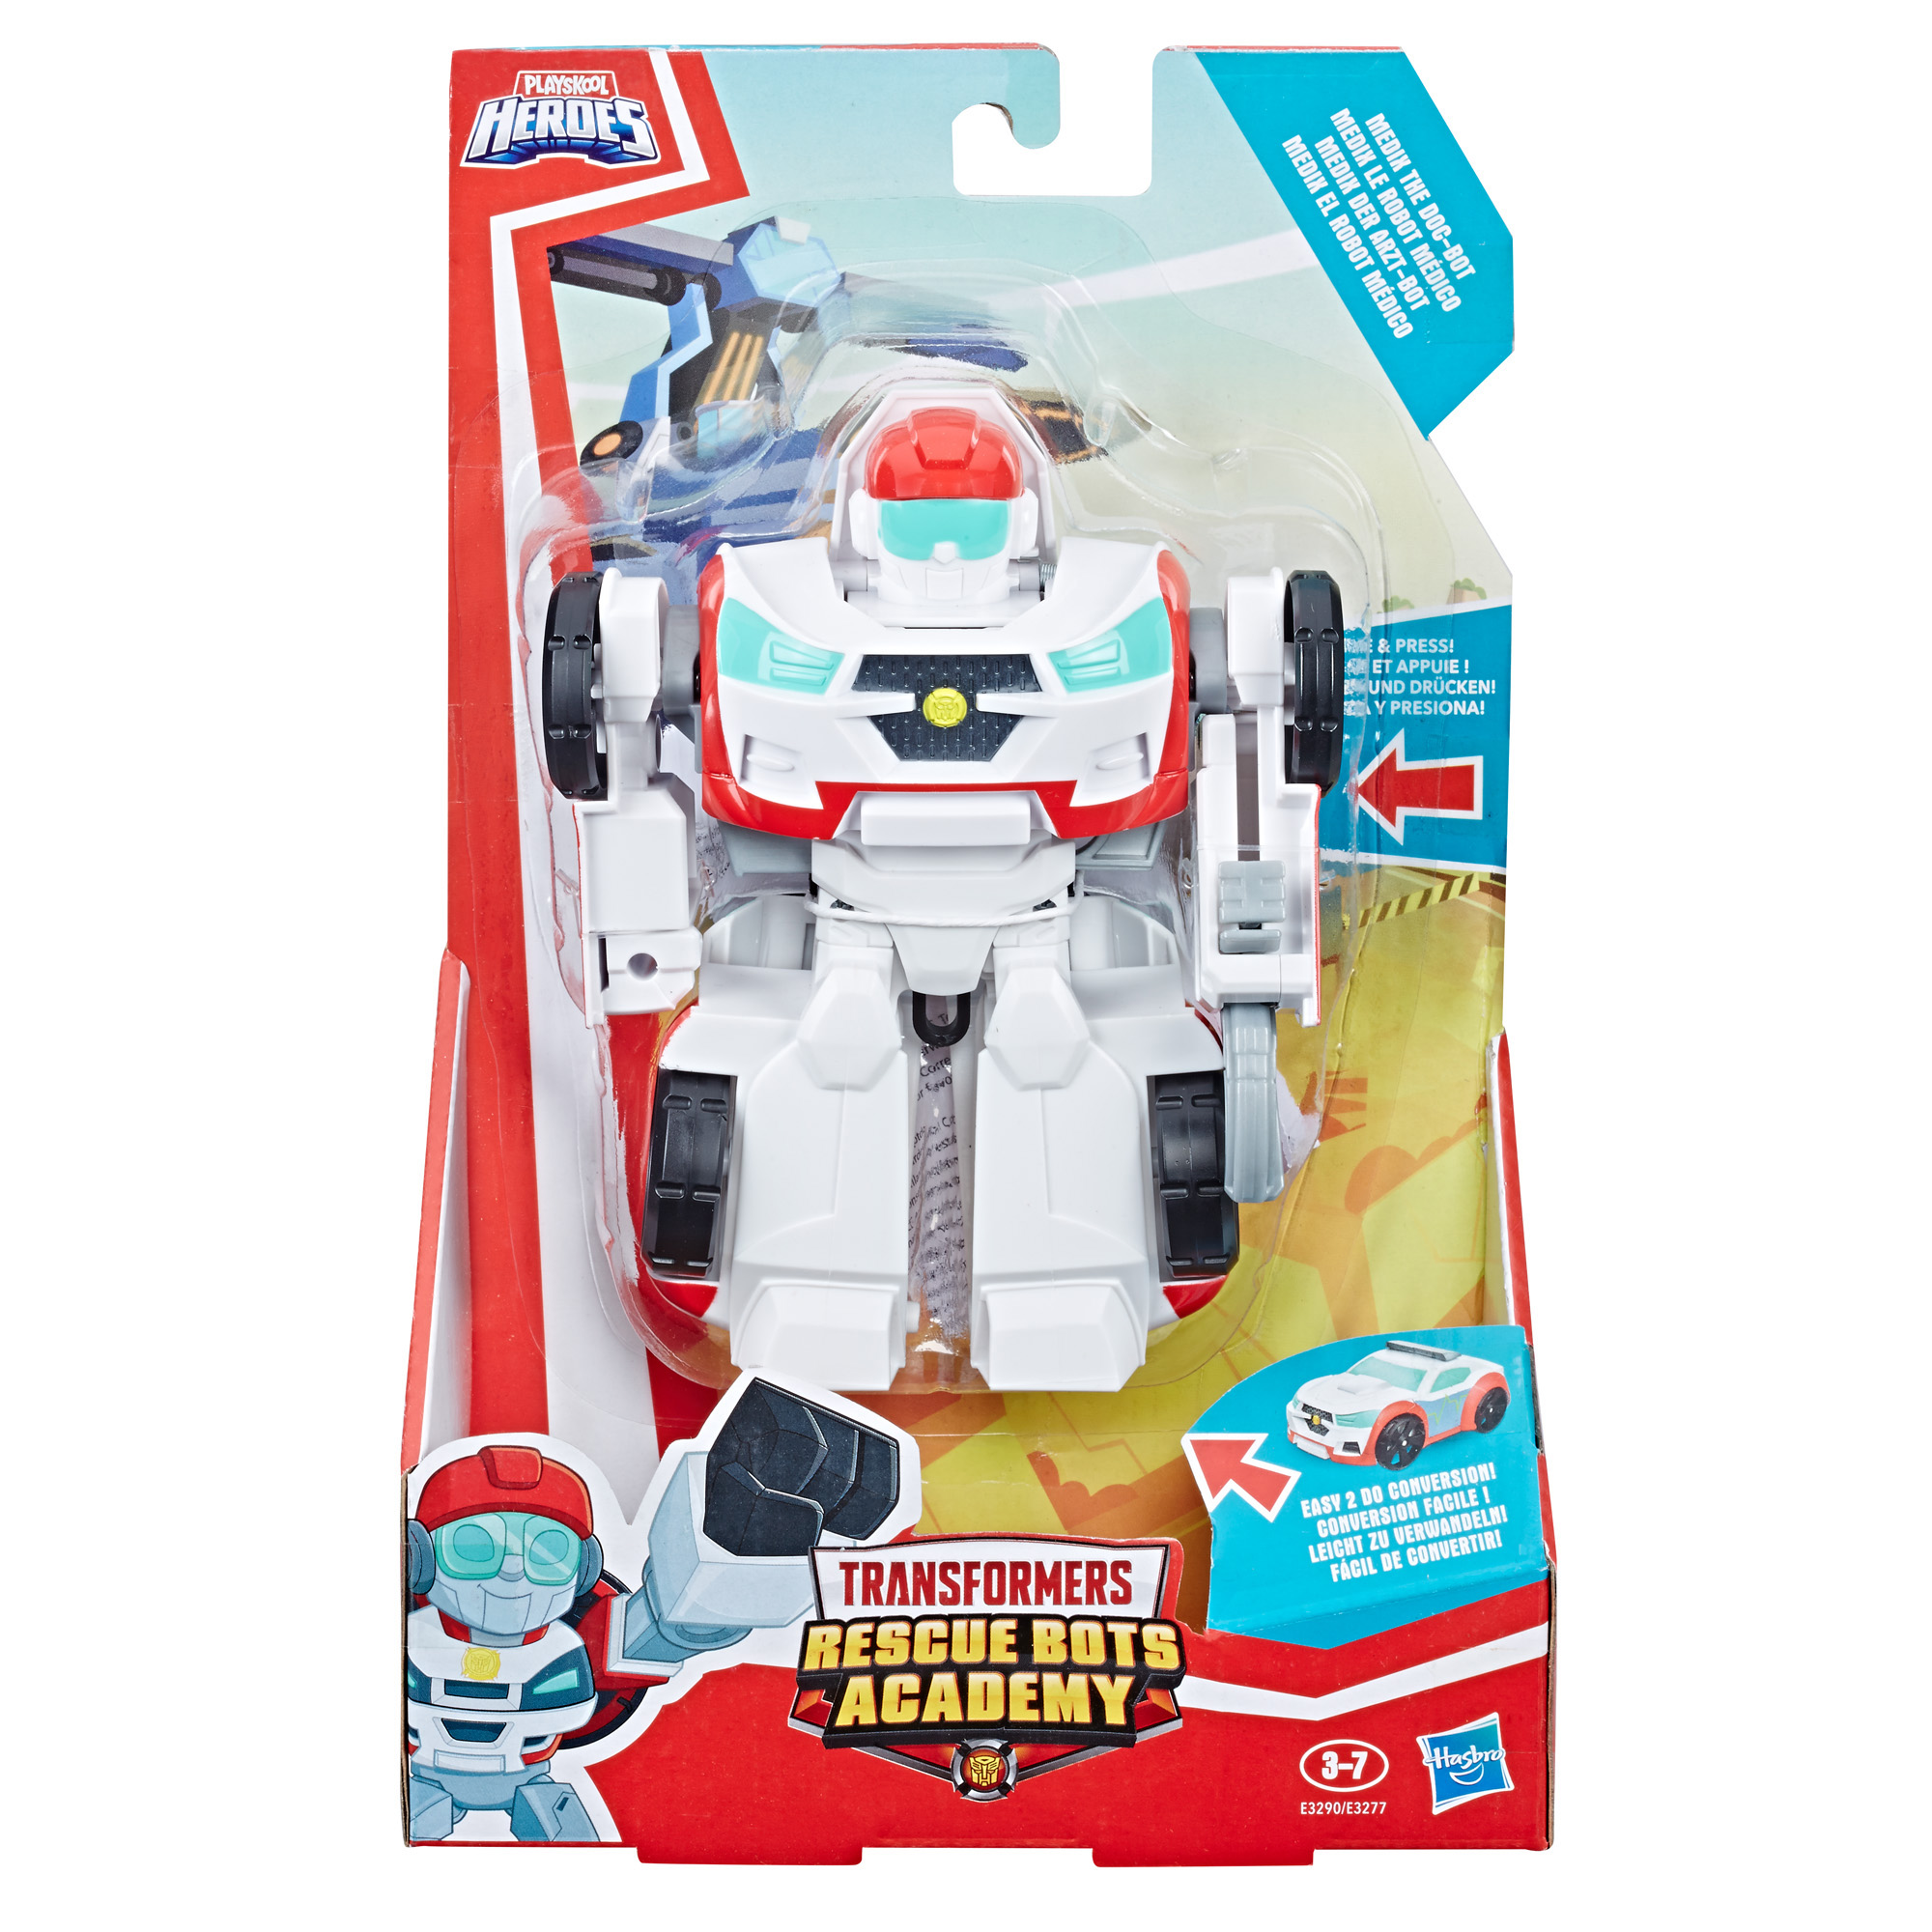 Picture of Transformers Rescue Bots Academy Large Assortment